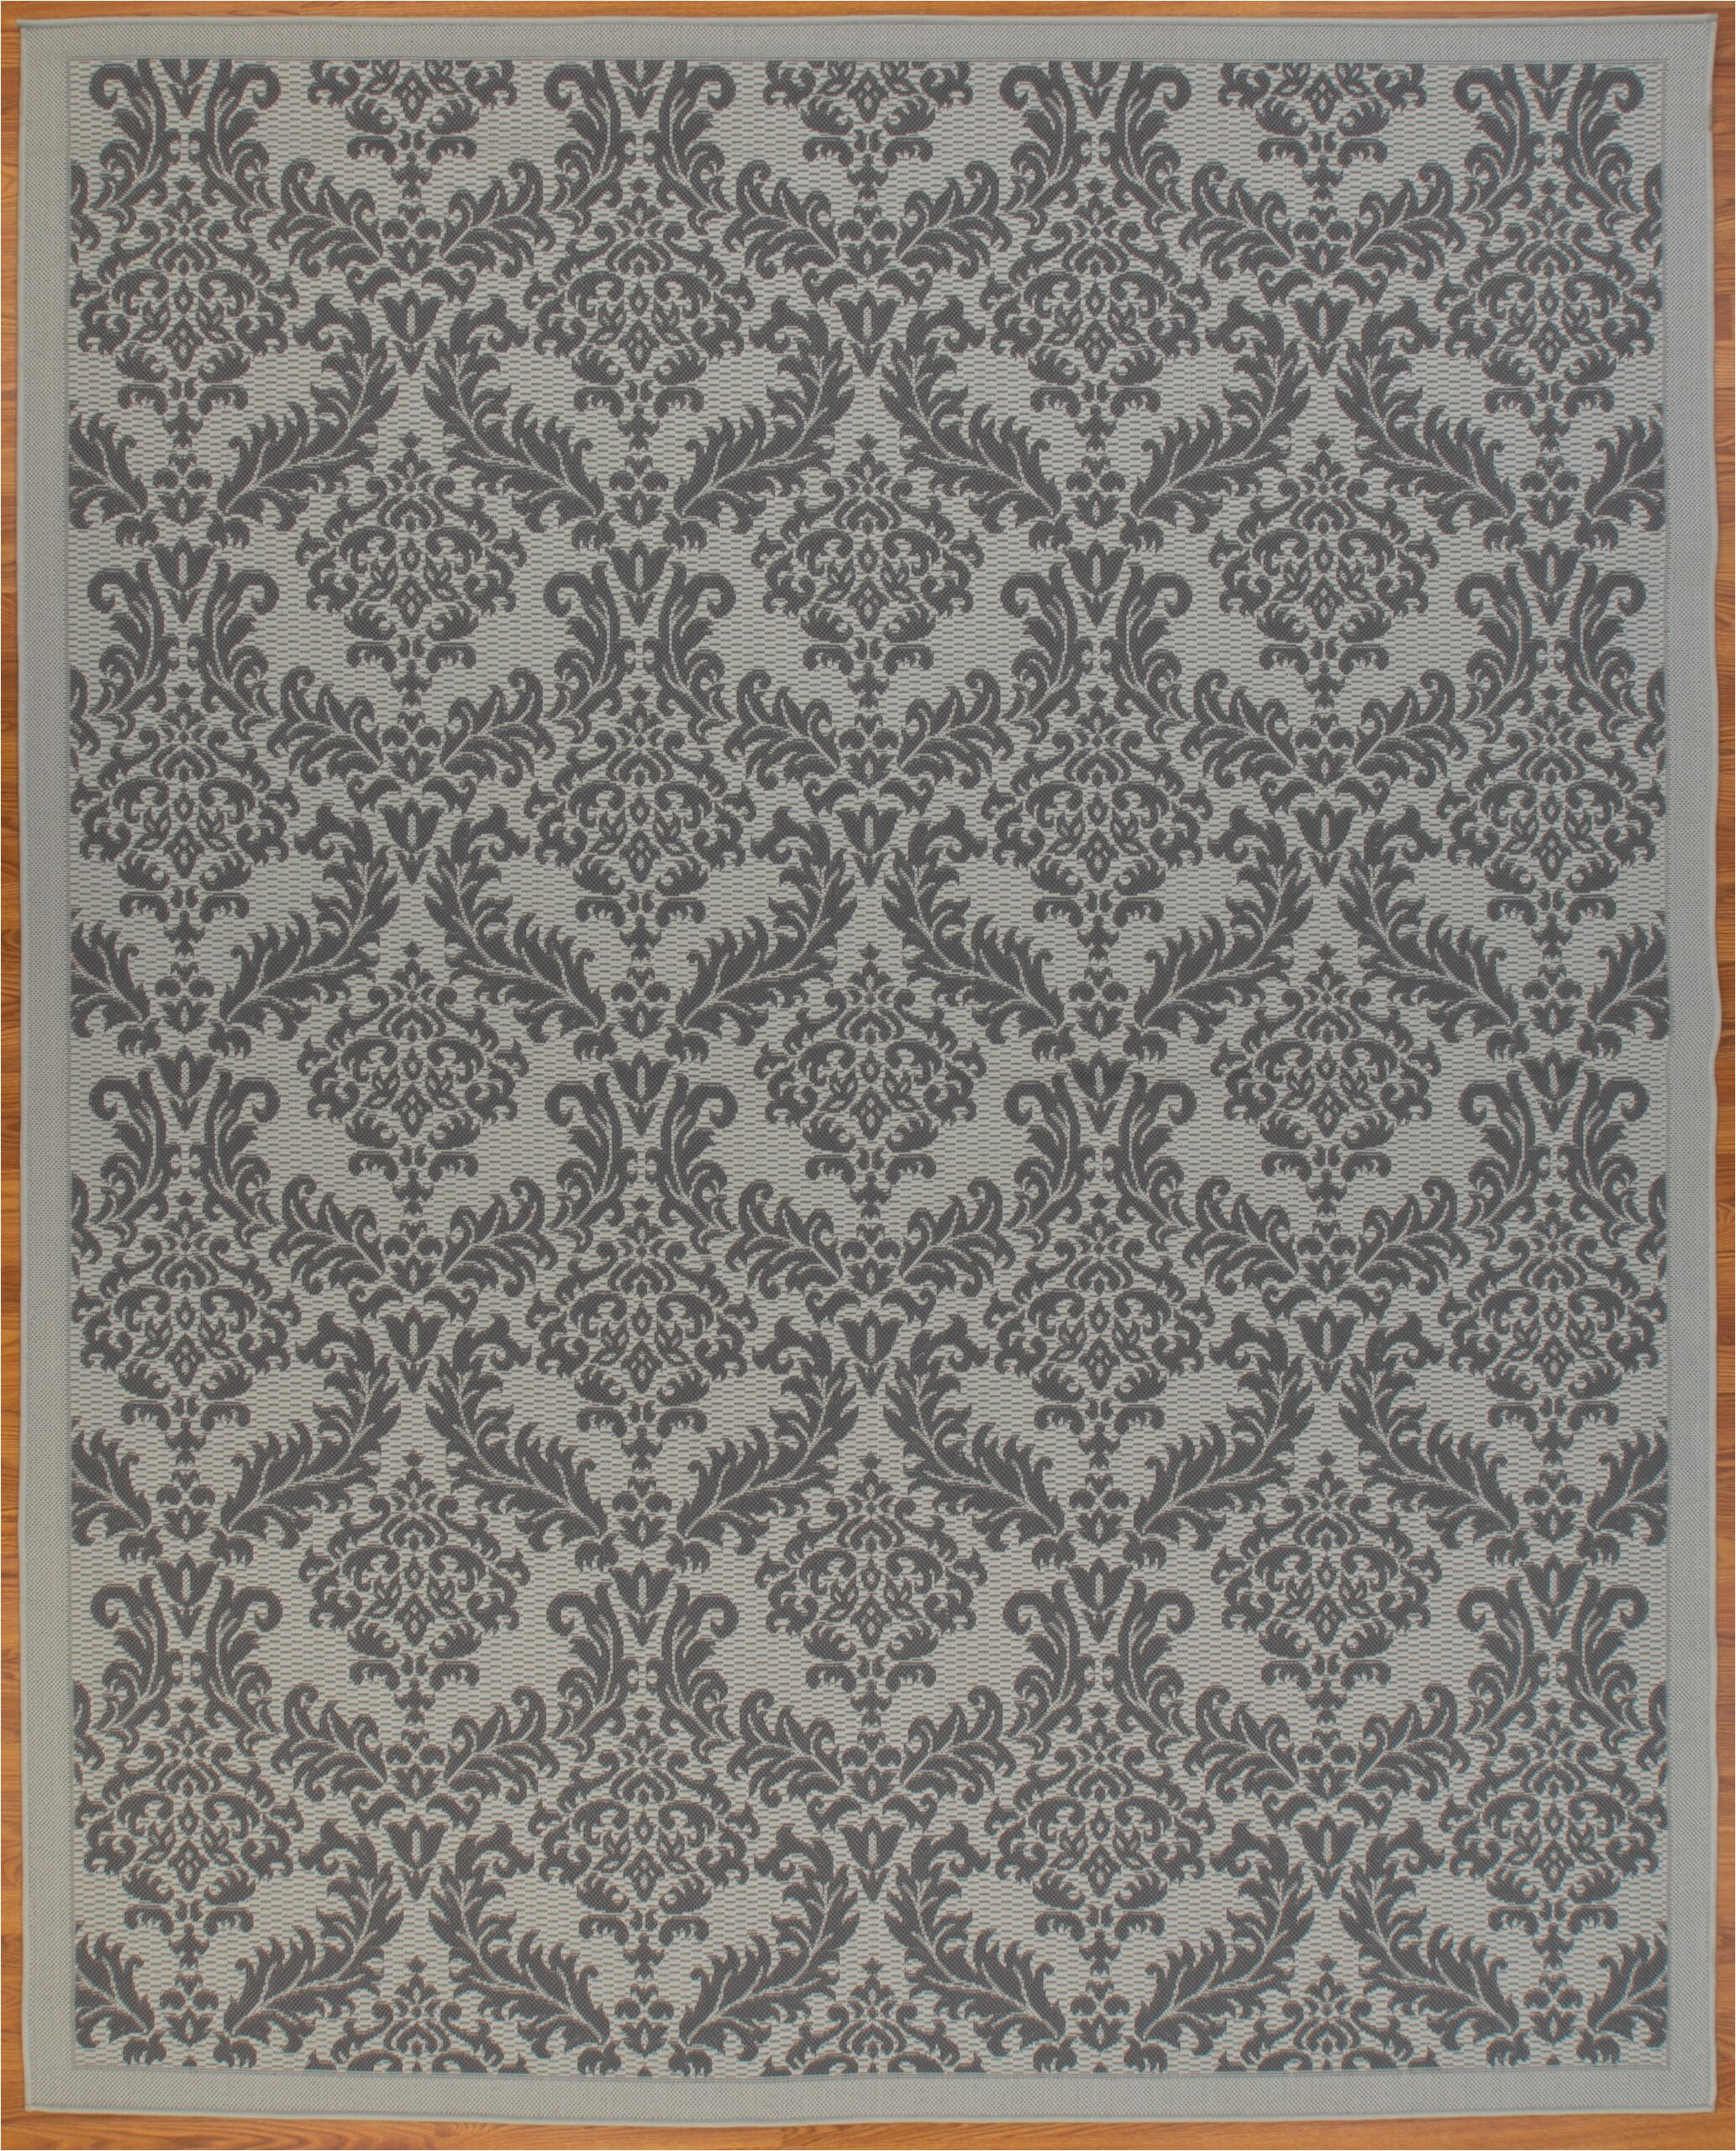 House Of Hampton area Rugs Schick House Of Hampton Flatweave Polypropylene Light Gray Anthracite Indoor Outdoor Use area Rug